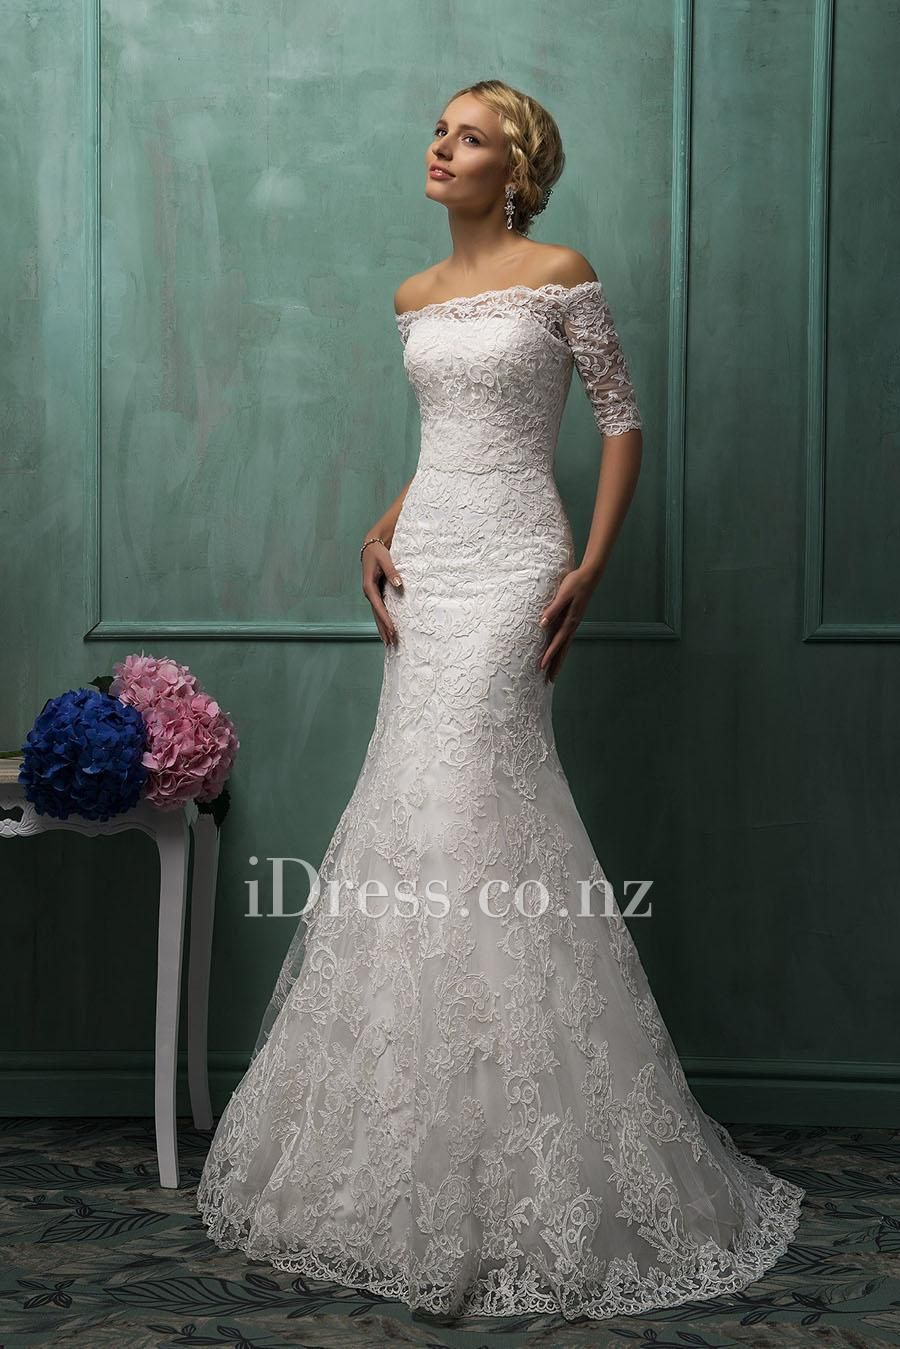 09f72d84731b Two-piece Strapless Lace Overlay Mermaid Wedding Gown with Detachable Off  Shoulder Sheer Lace Jacket